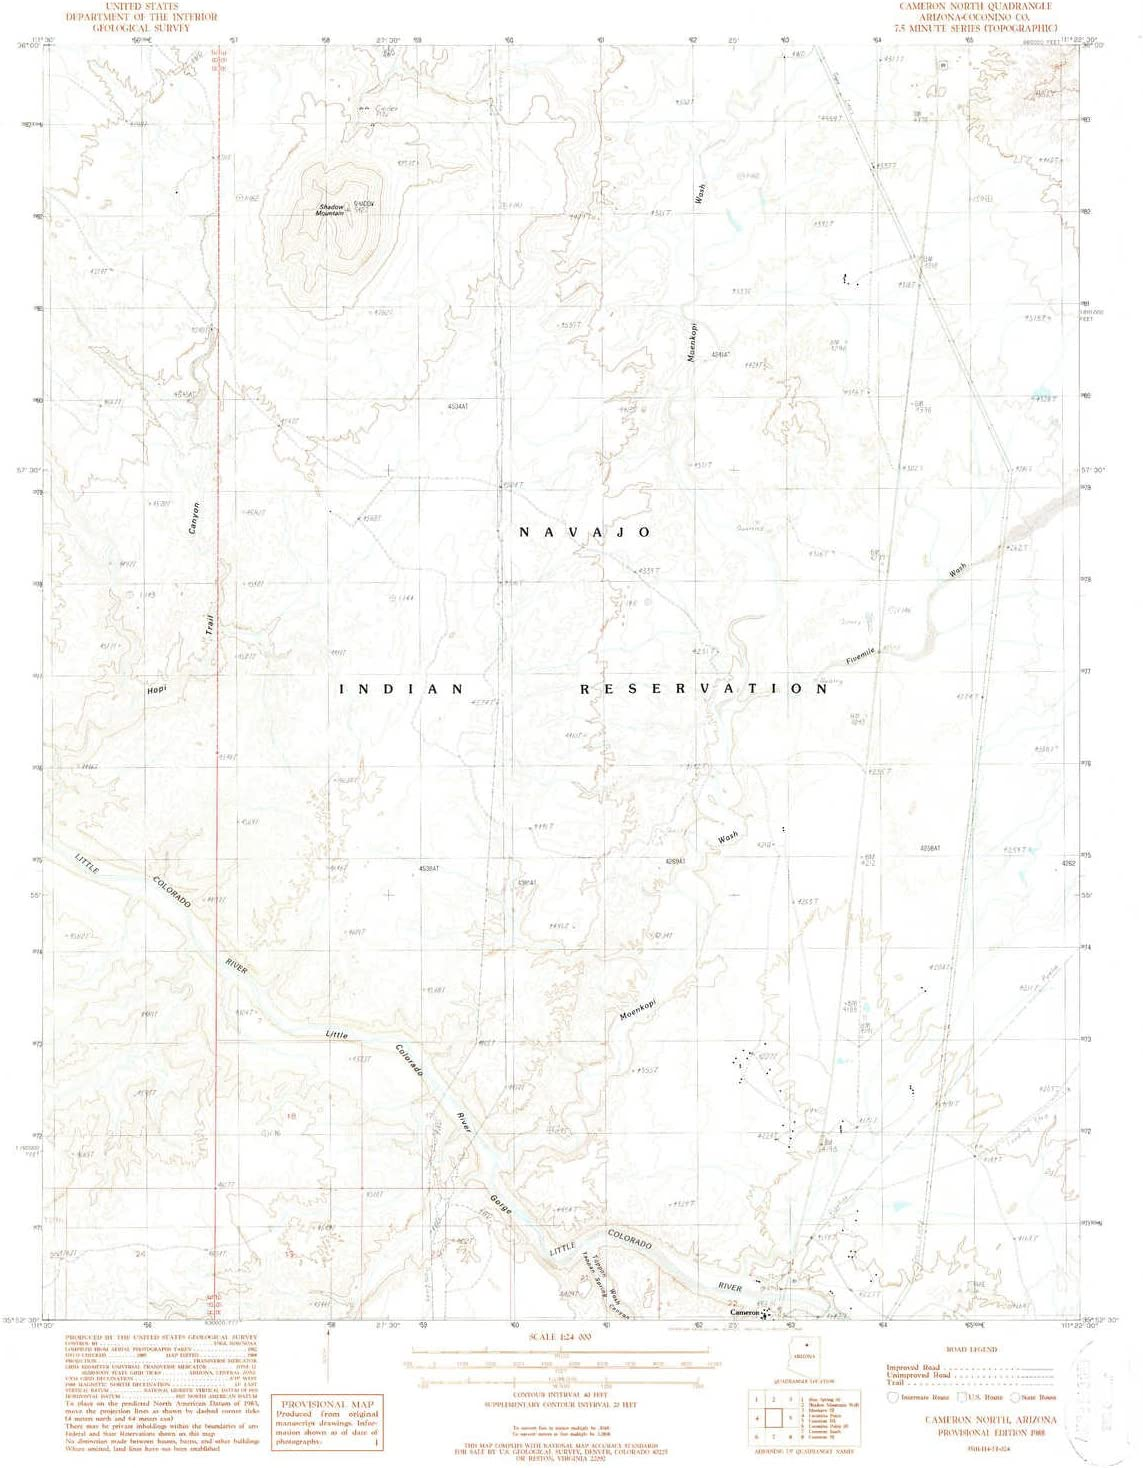 YellowMaps Cameron North AZ topo map M 7.5 Fees free 1:24000 Factory outlet Scale X